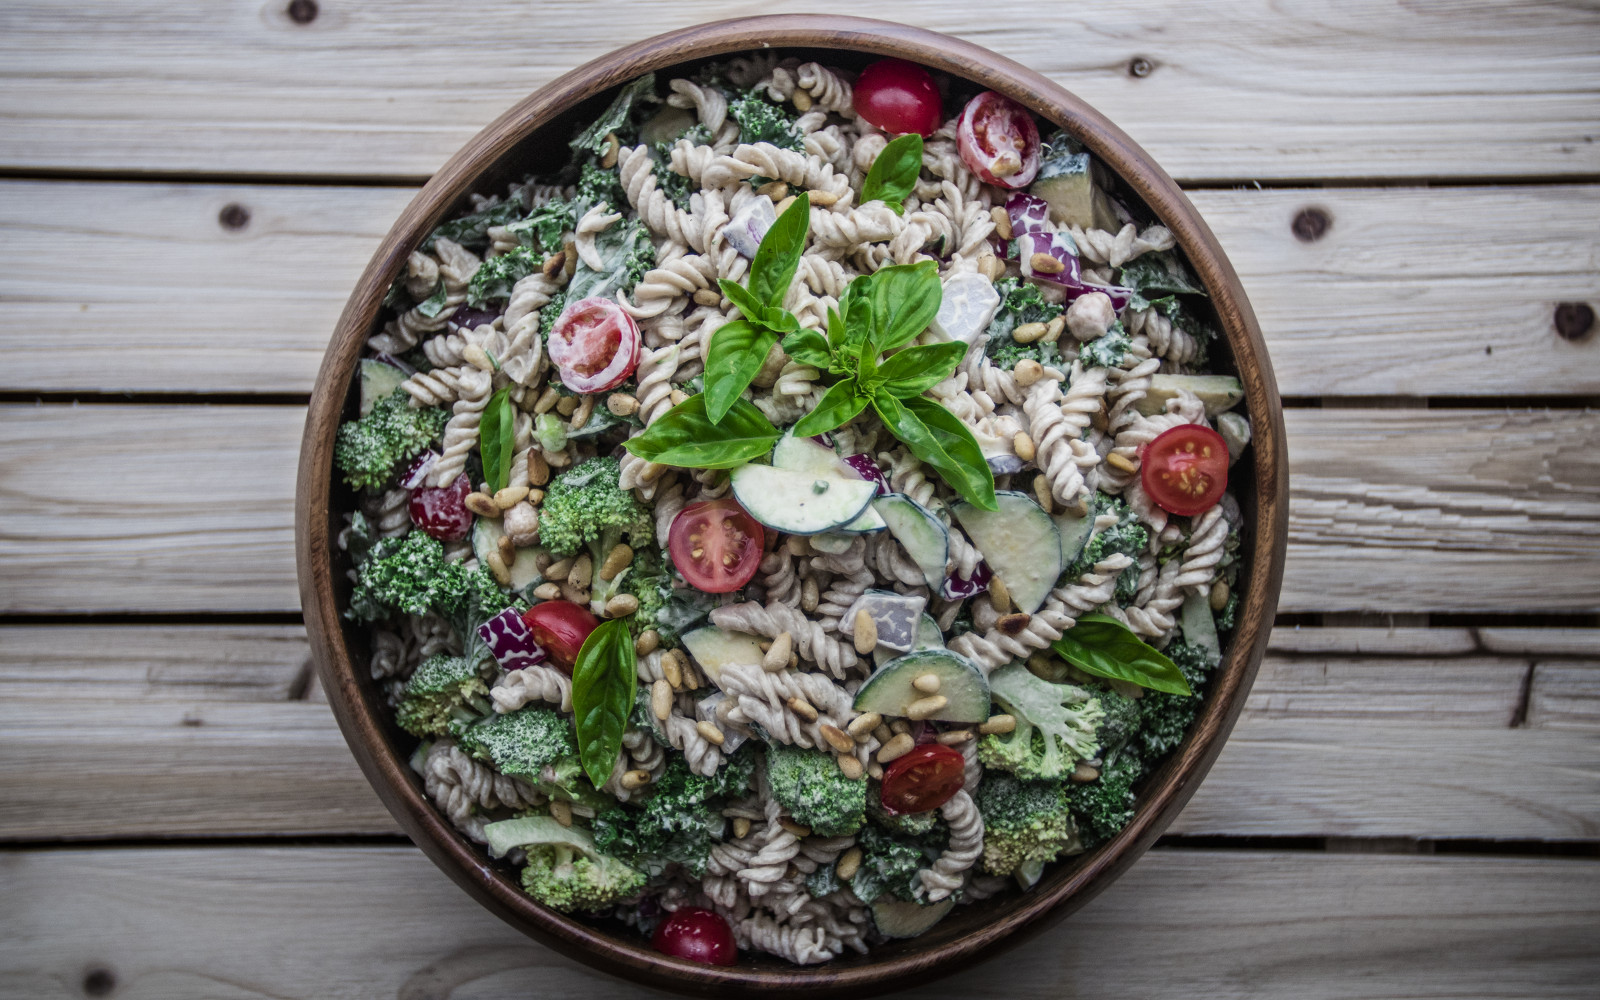 Garden Picnic Pasta Salad With Veggies, Herbs, and Orange-Miso Tahini Dressing